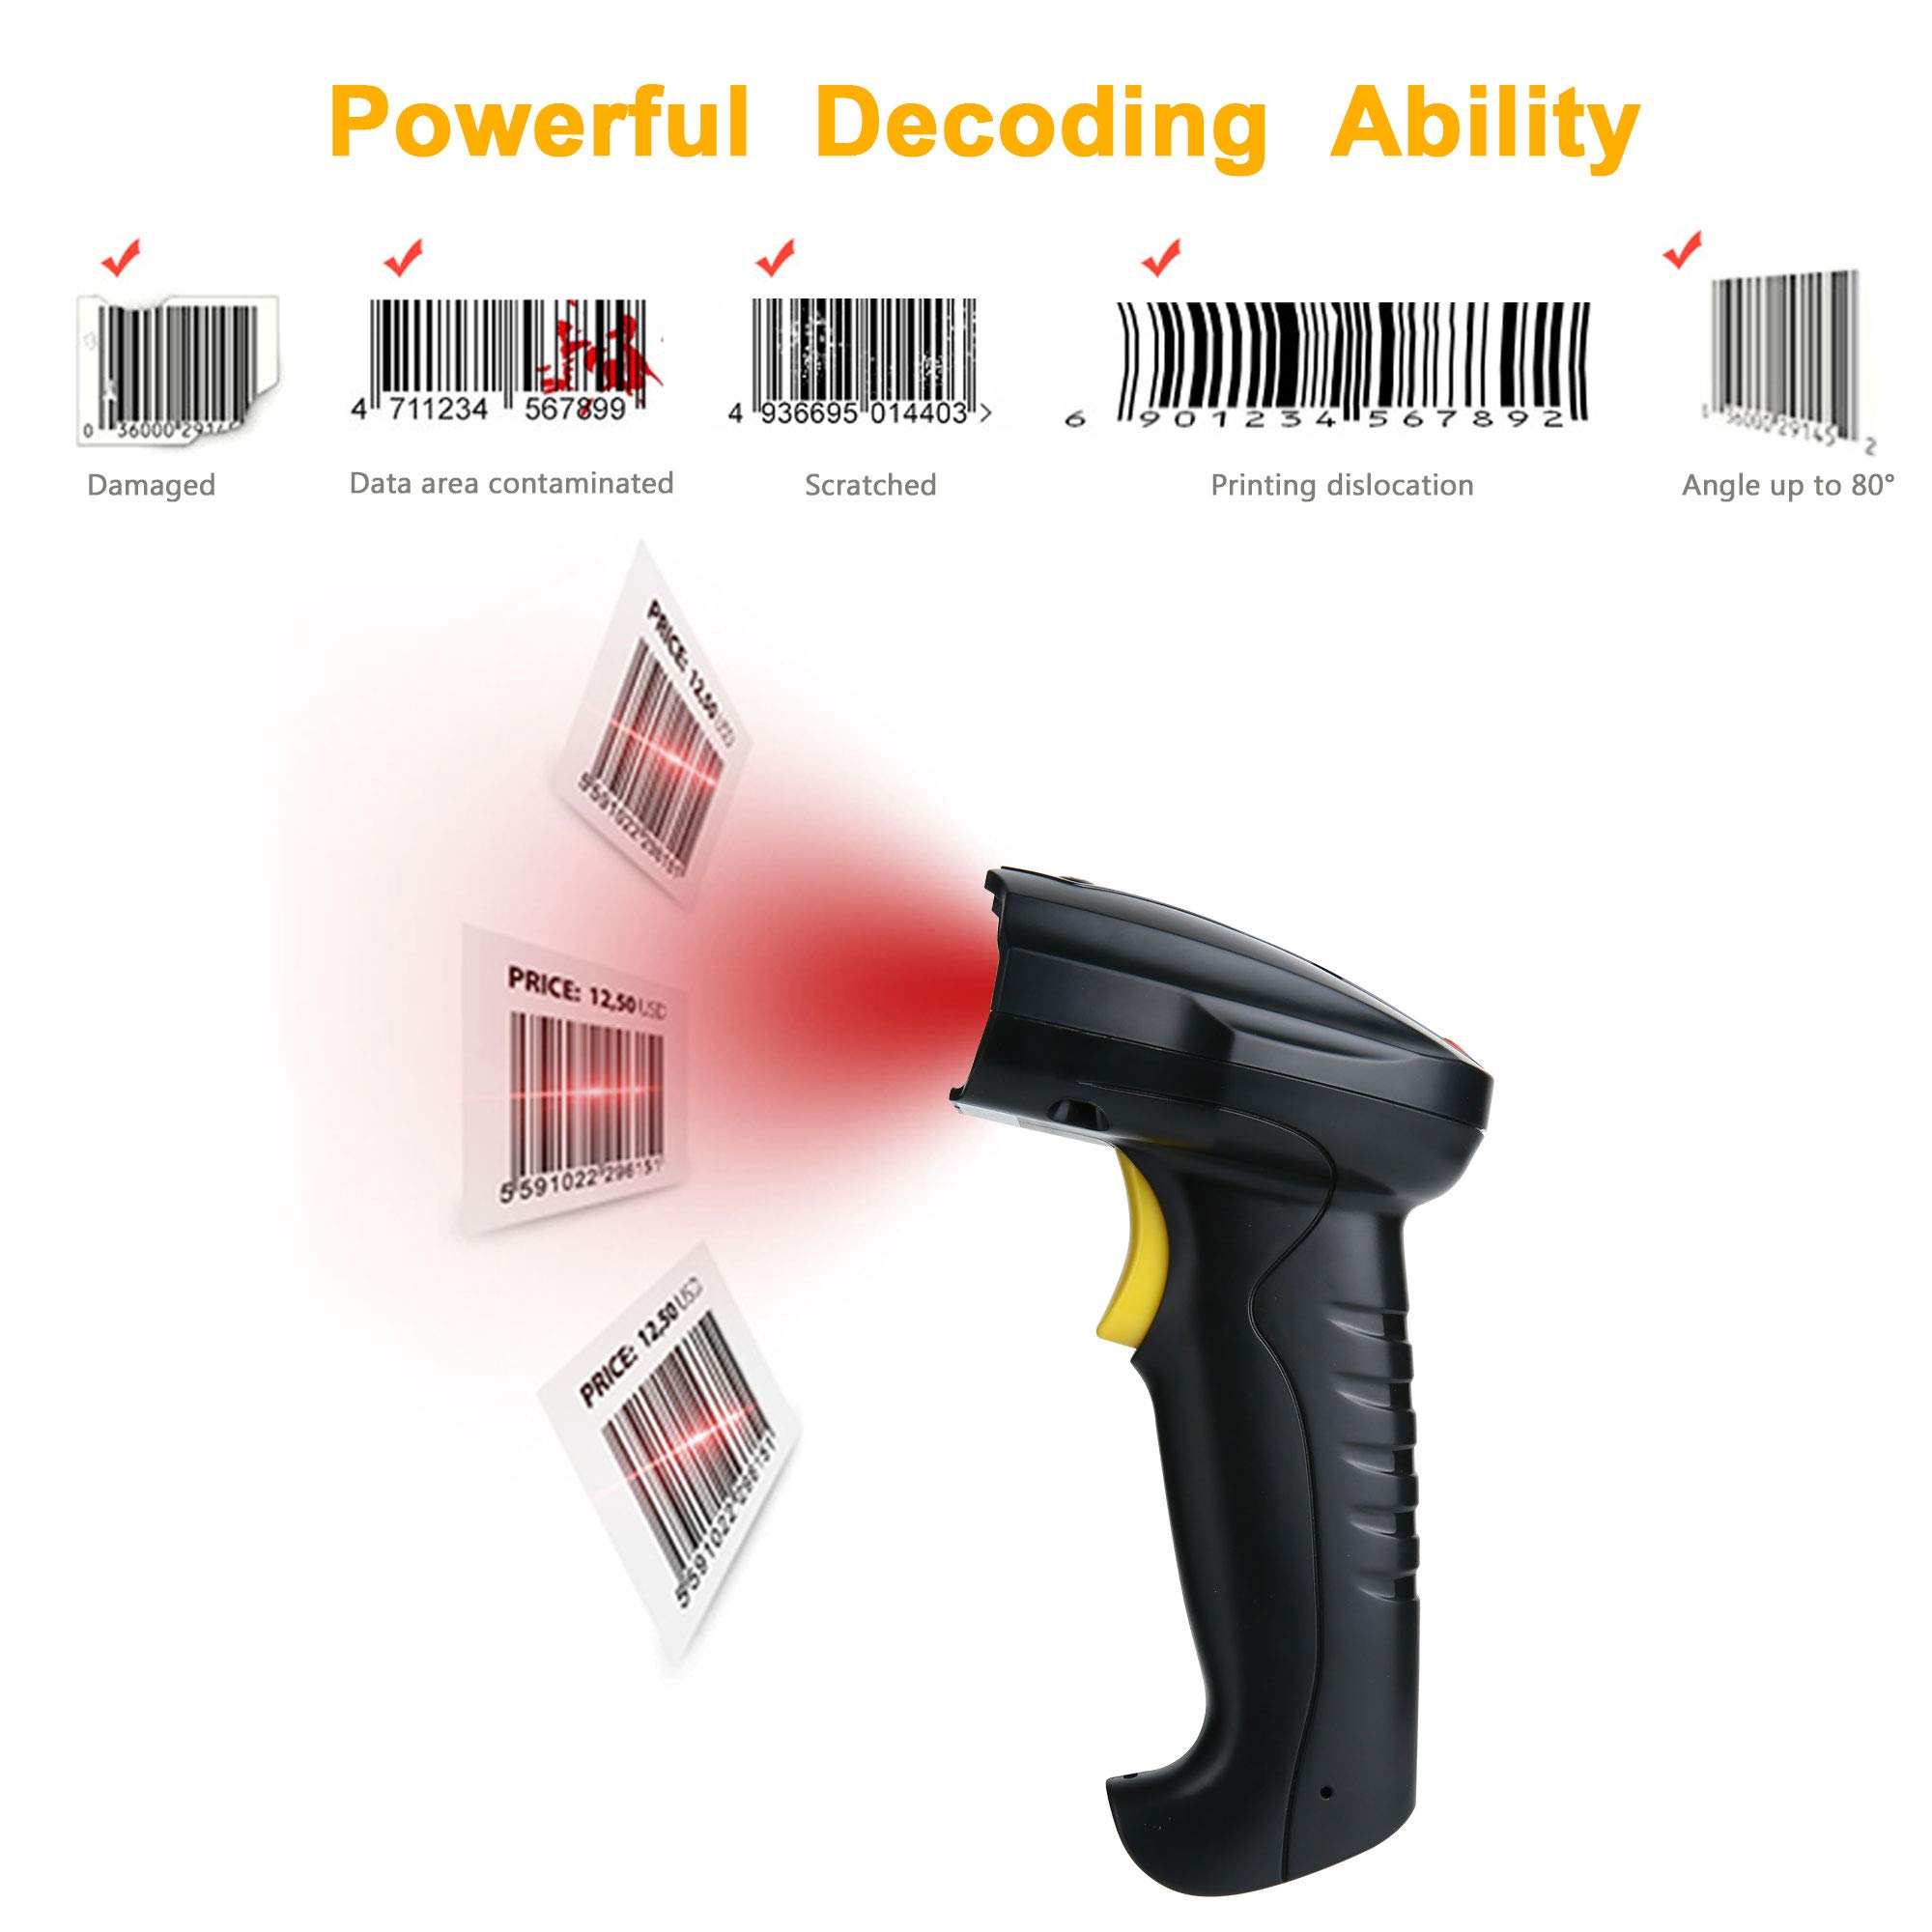 TaoHorse Handheld USB Barcode Scanner Wired Laser 1D Bar Code Reader for POS PC Laptop